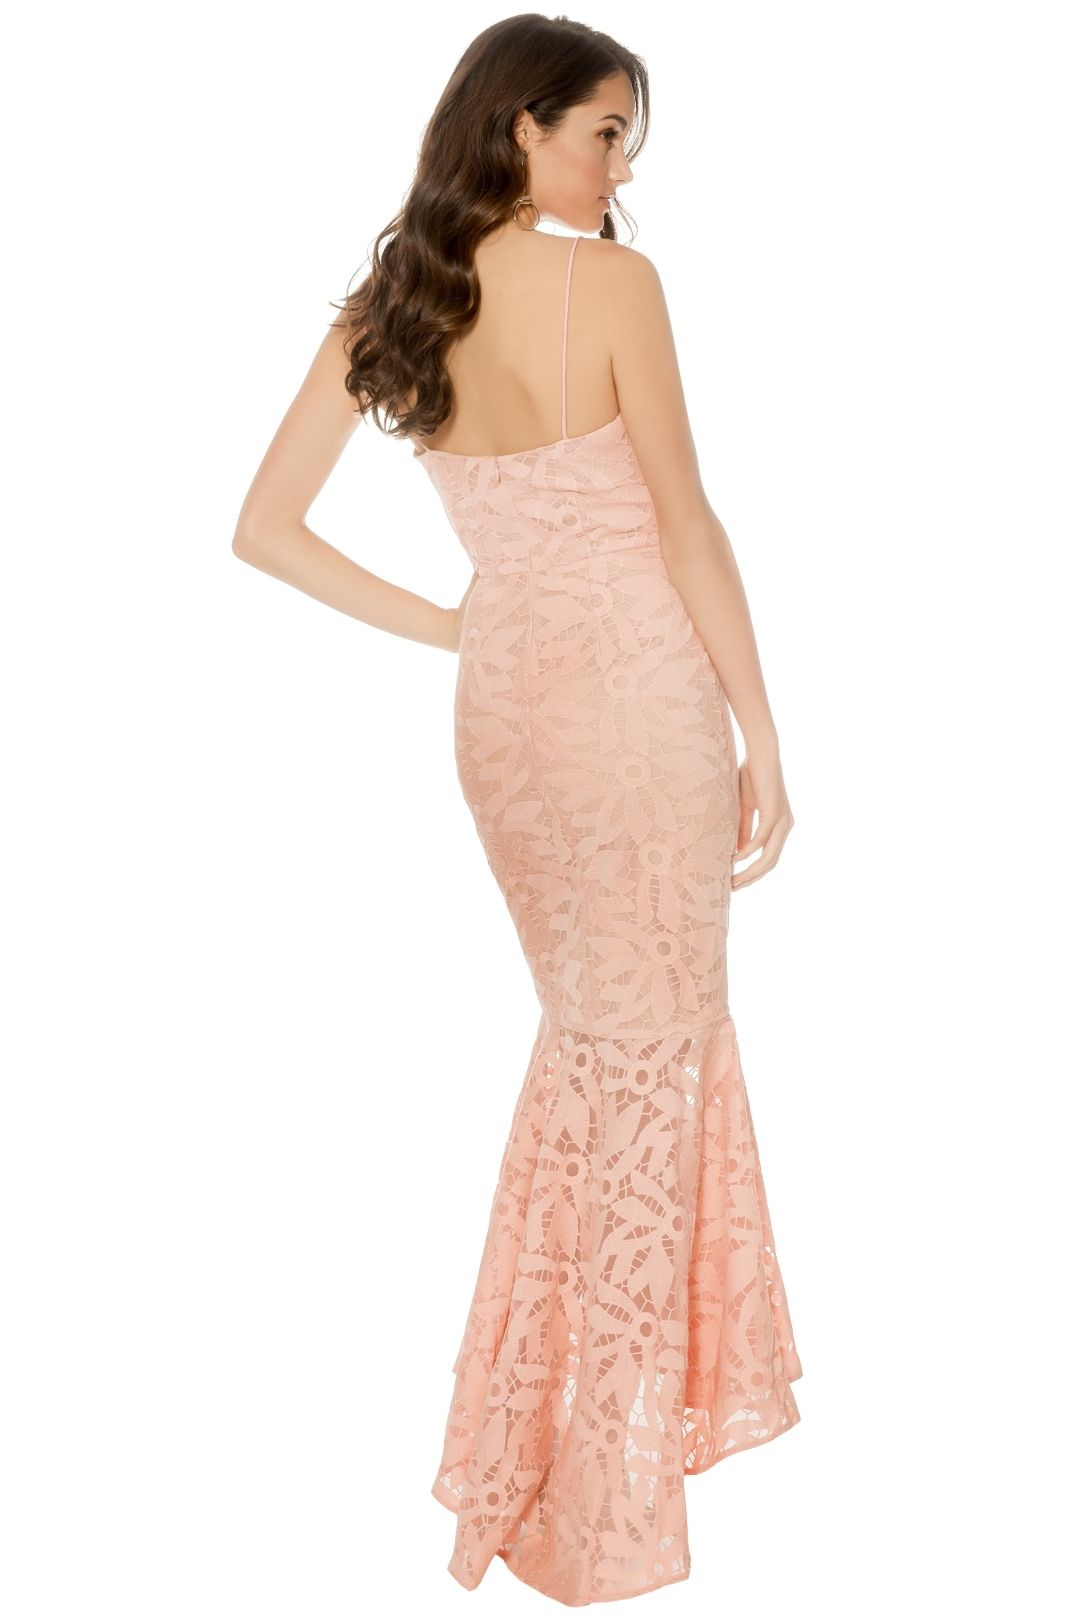 Cooper St - Lady of Venice - Pink - Back